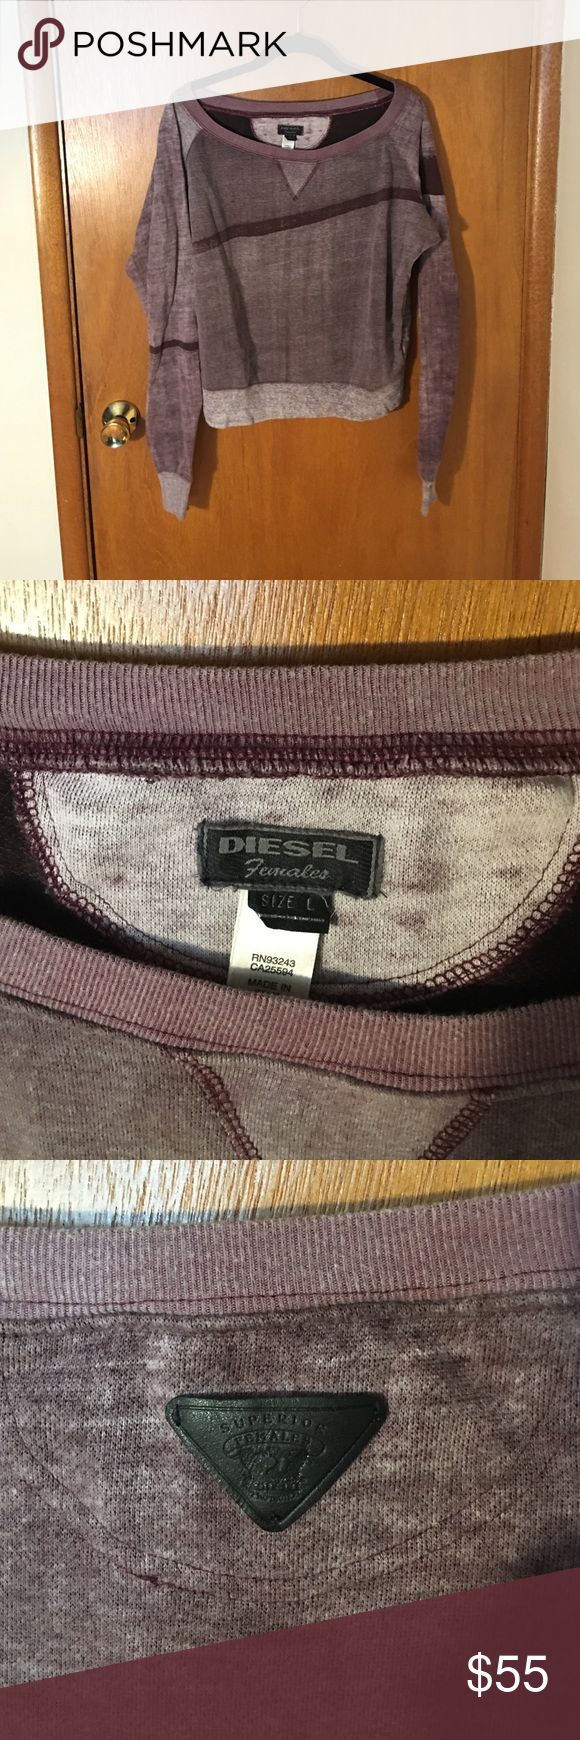 Diesel Cropped Burgundy Sweatshirt This great Diesel Sweatshirt is Cropped in length with blush and Burgundy in the weathered print. In excellent condition. Diesel Tops Sweatshirts & Hoodies